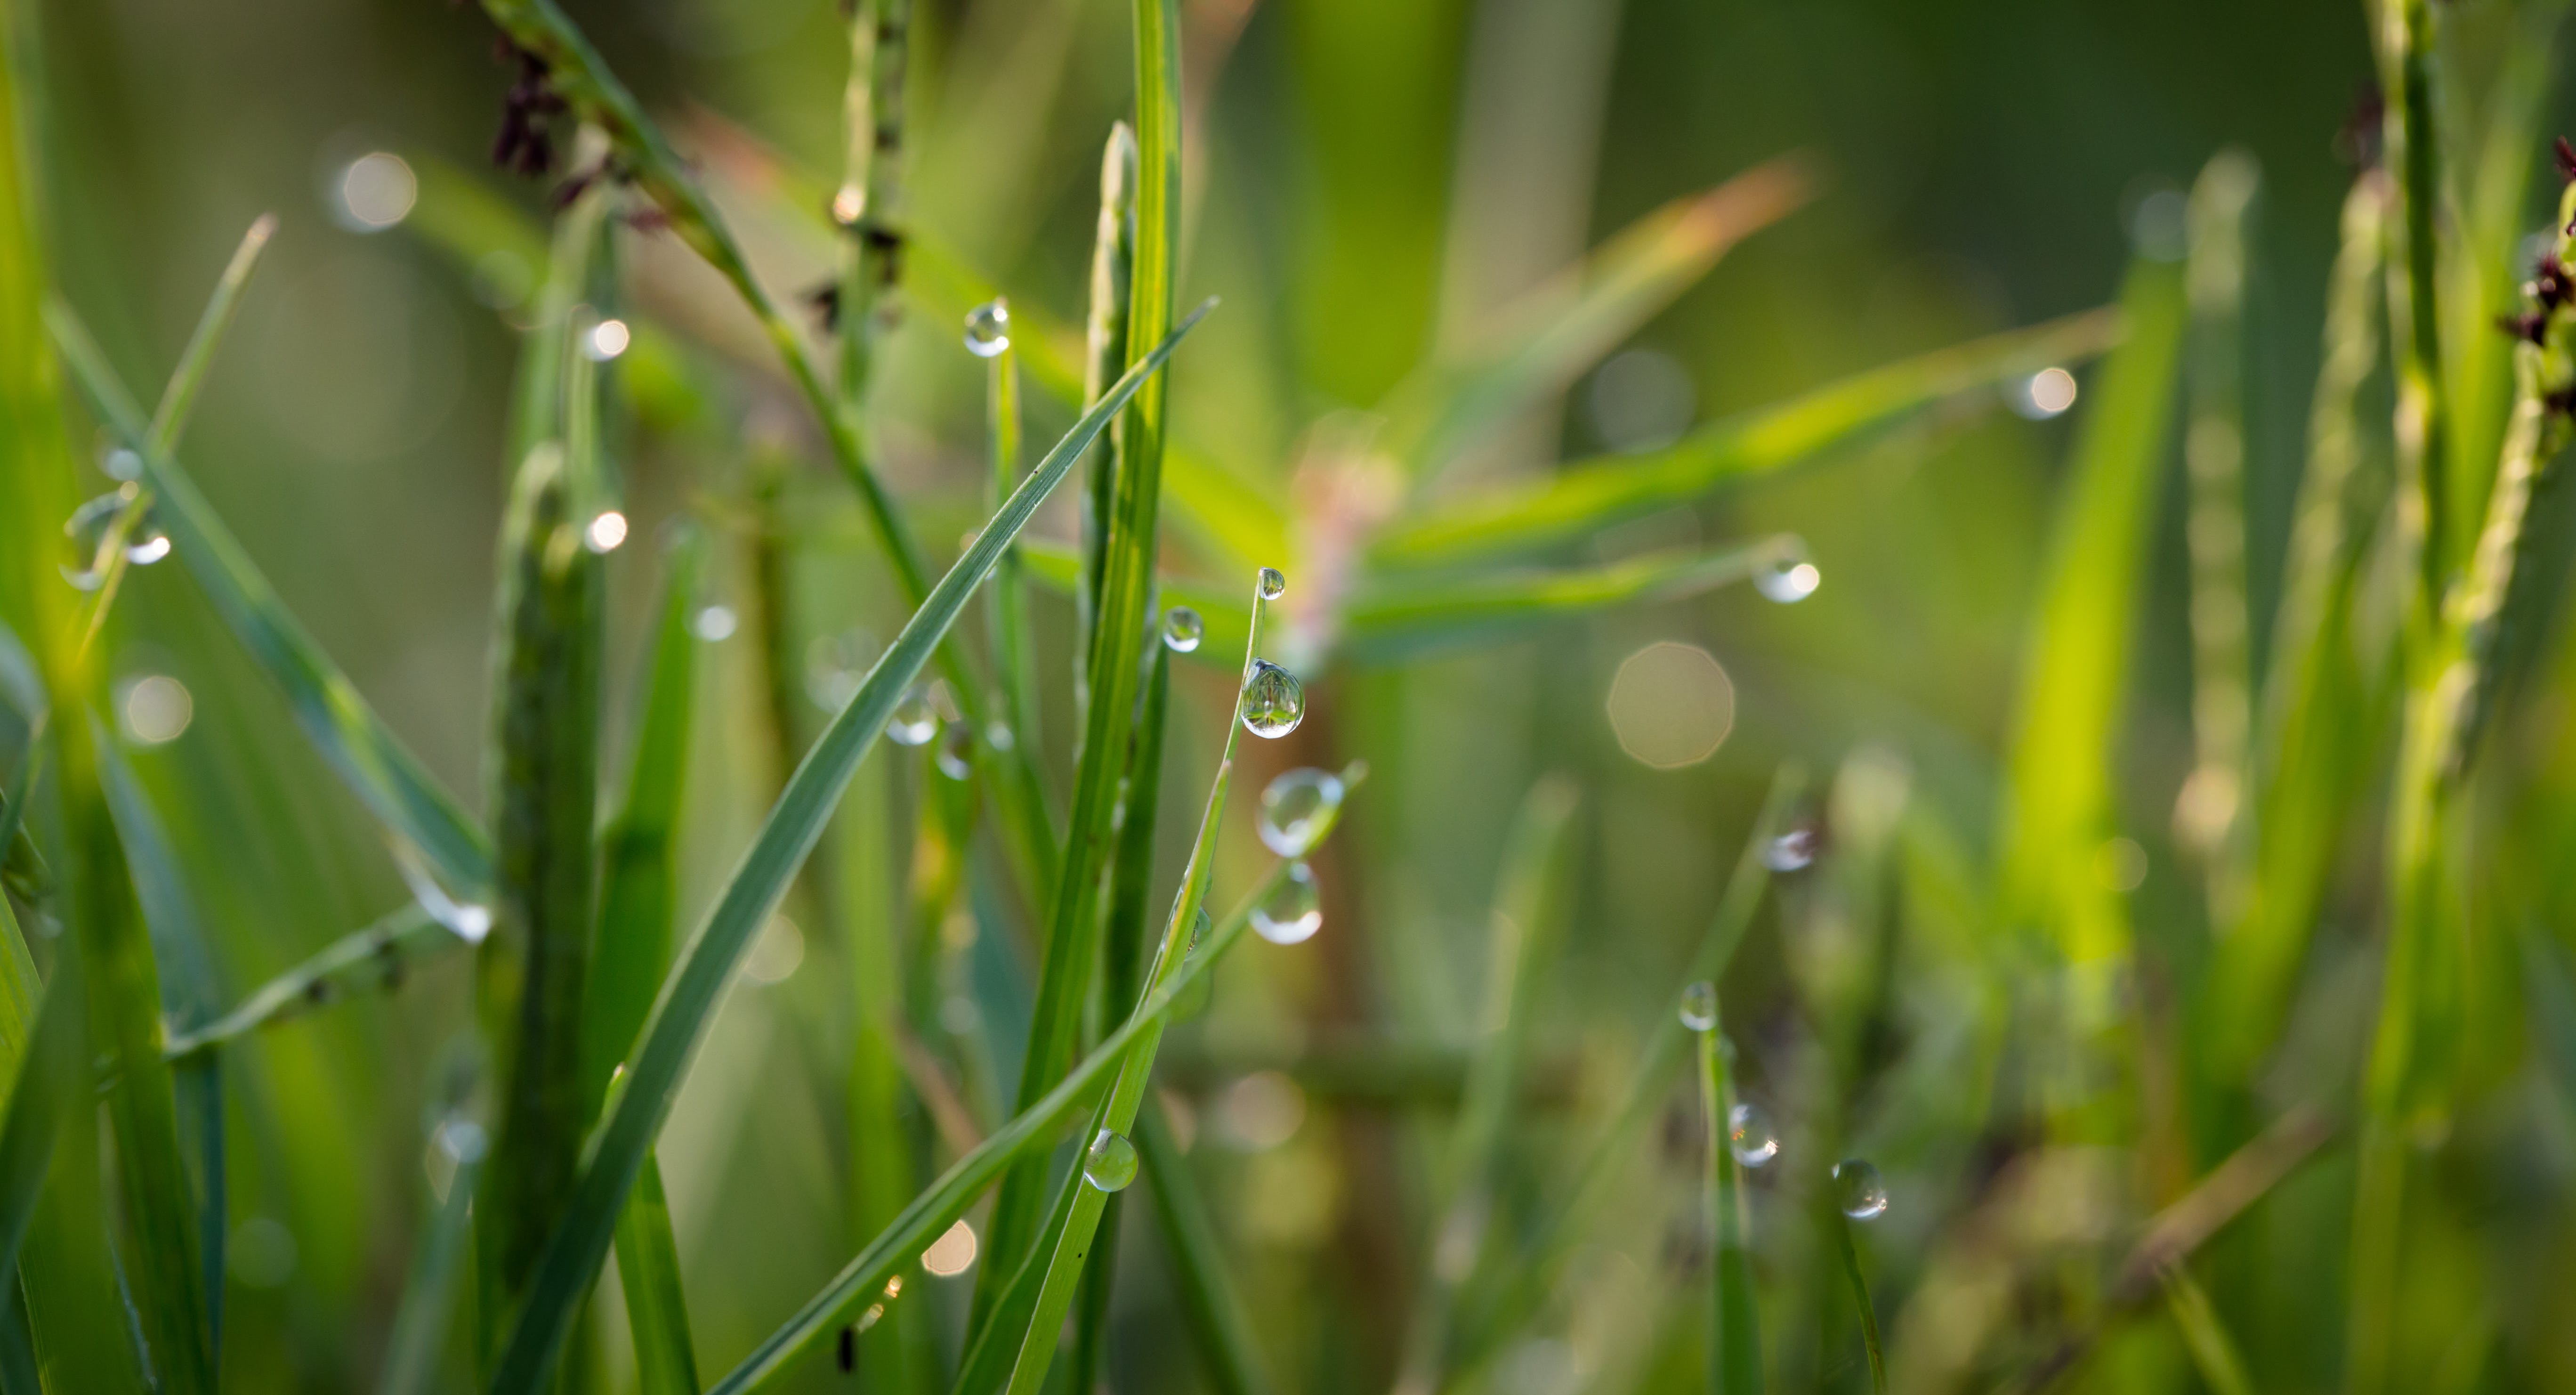 Grass With Dew Drops during Daytime